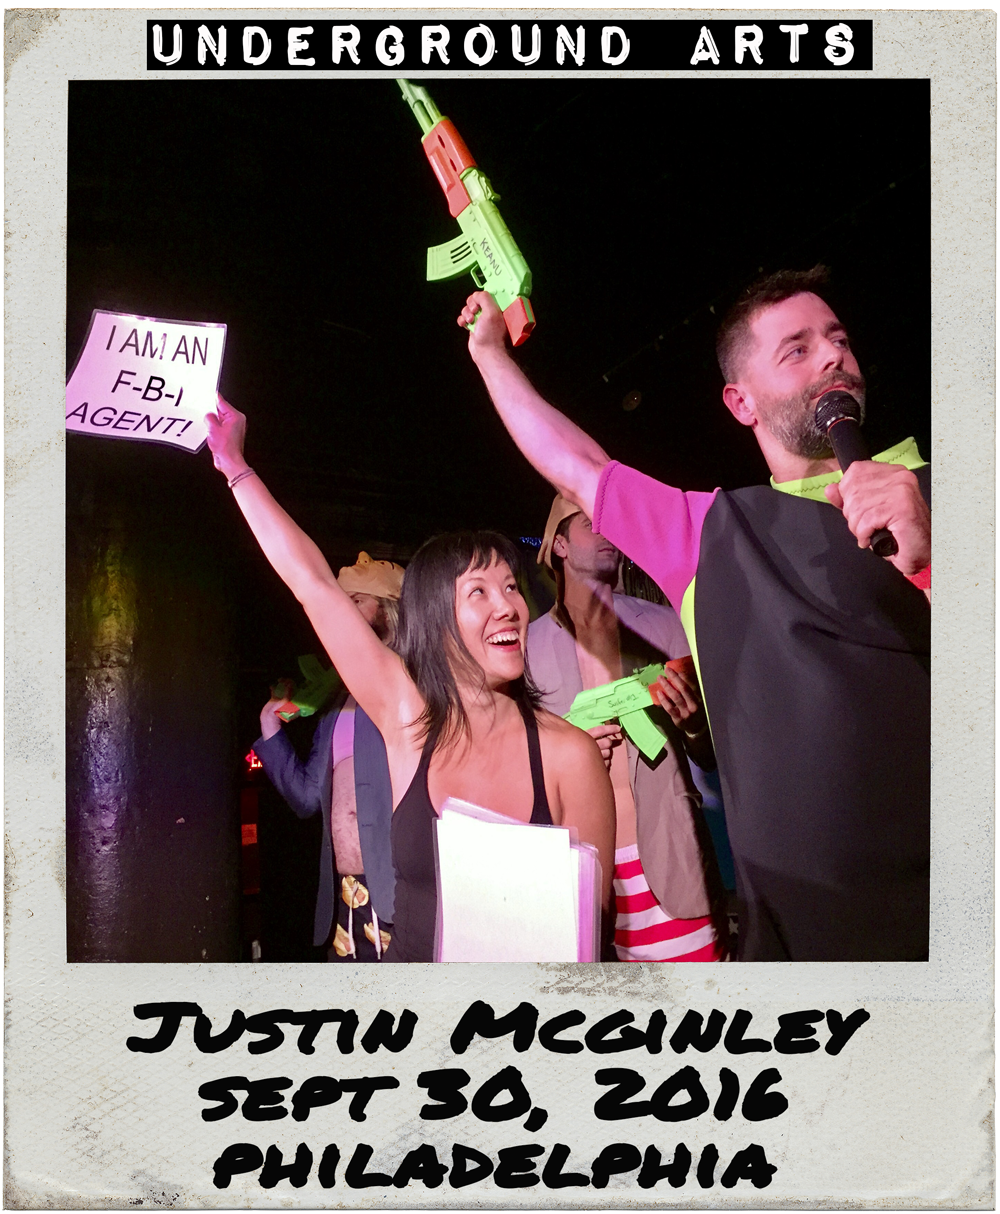 09_30_16_Justin-McGinley_Underground-Arts_Philly.png